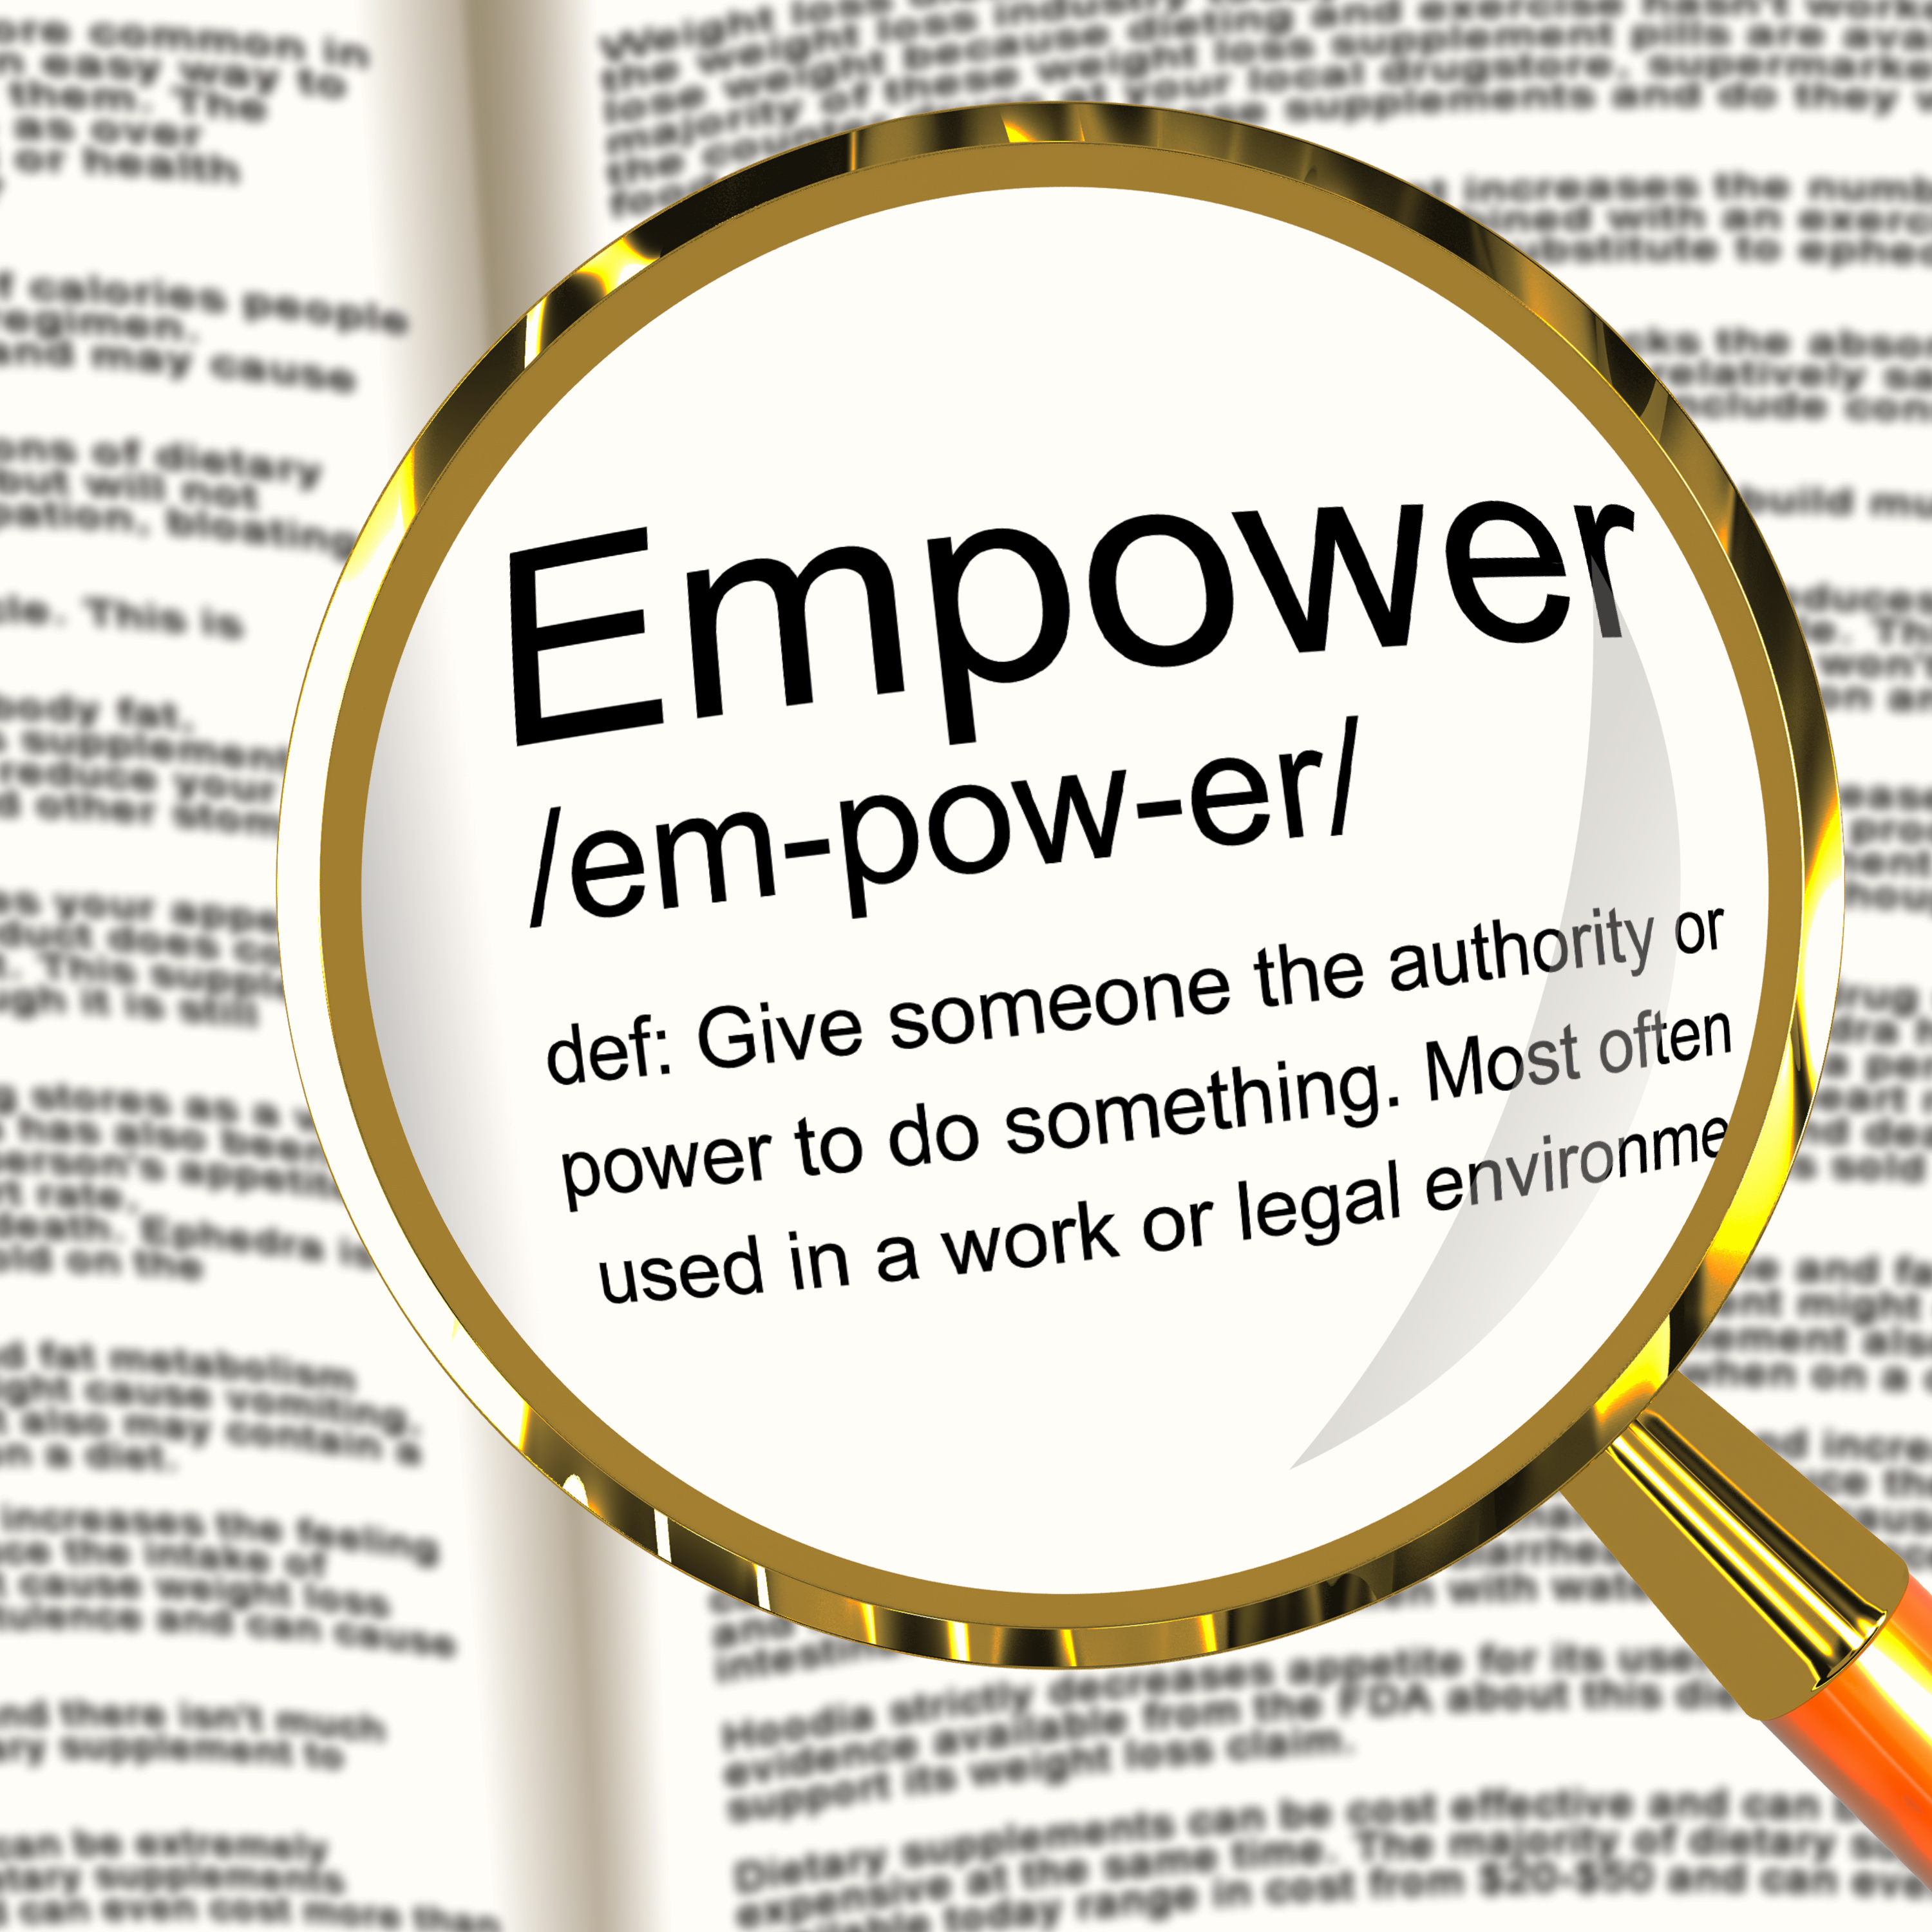 empowerment-definition2